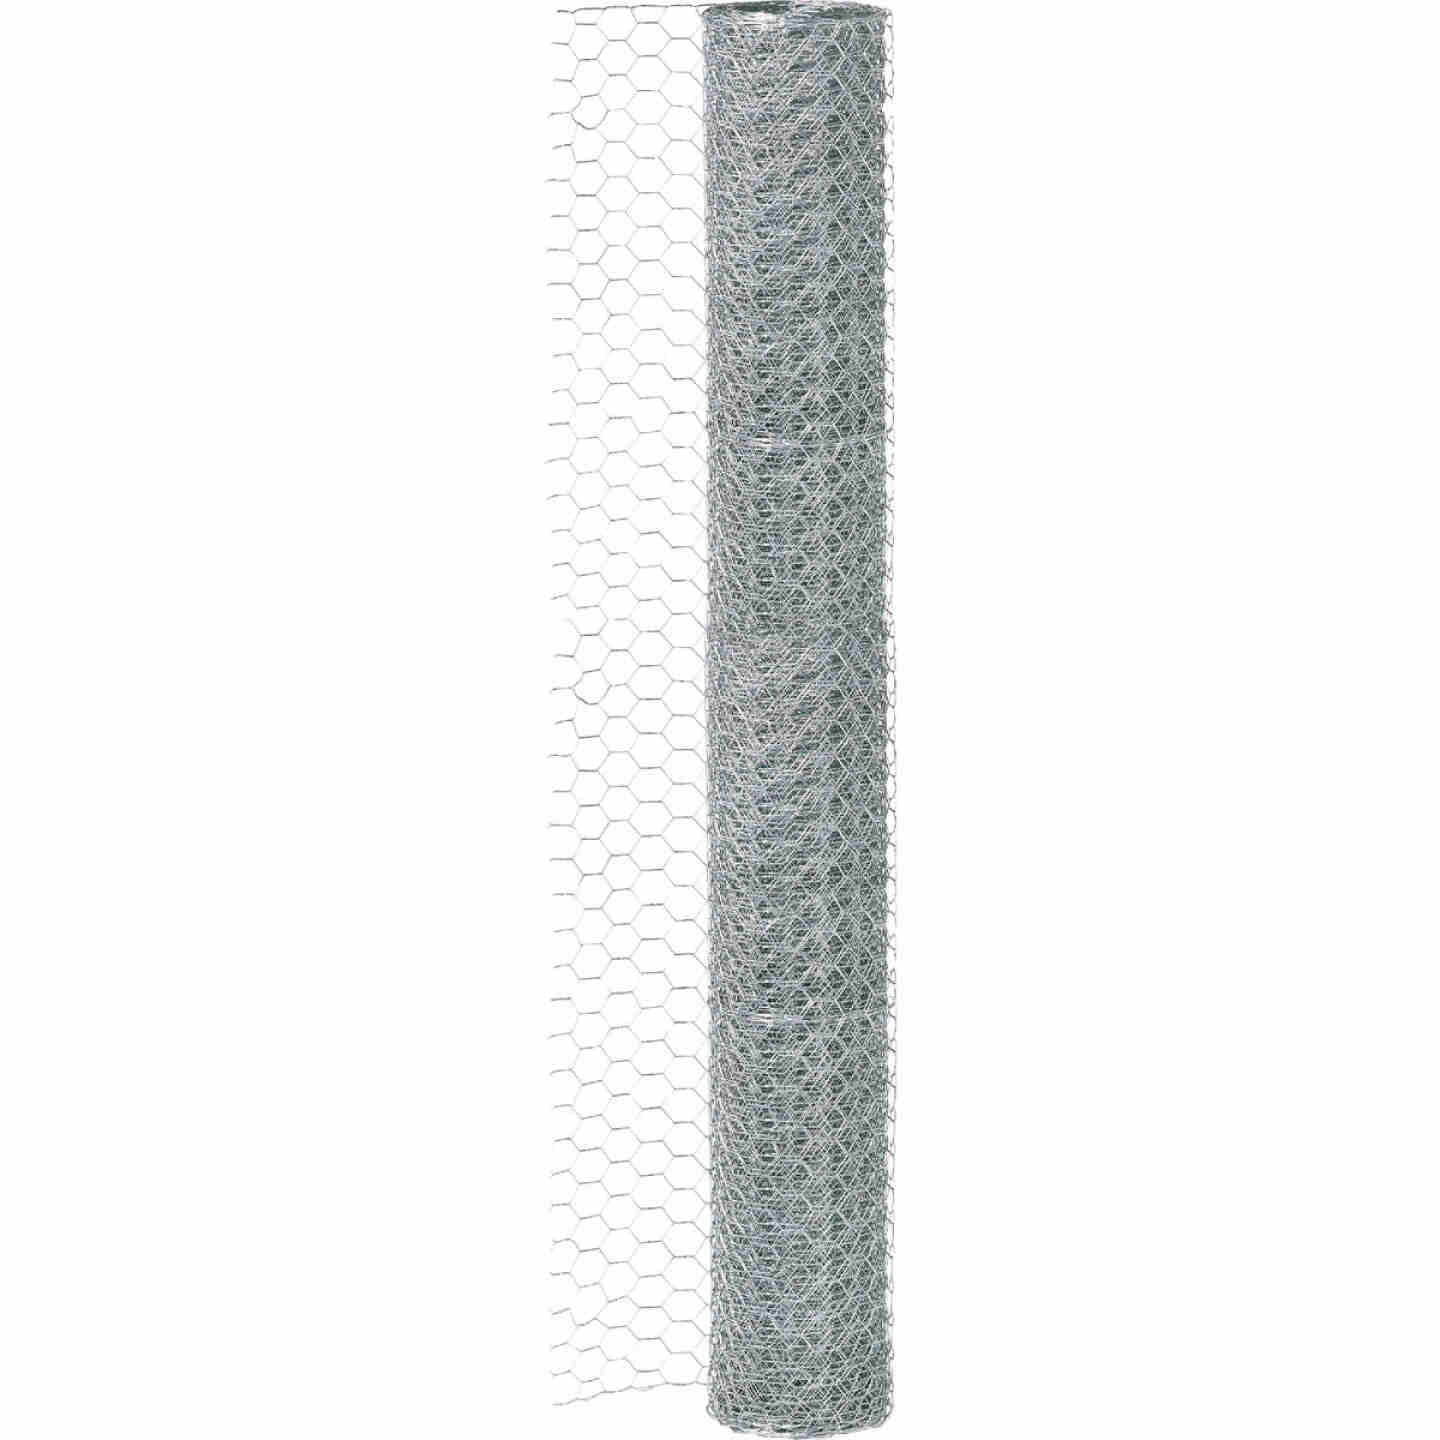 Do it 2 In. x 36 In. H. x 25 Ft. L. Hexagonal Wire Poultry Netting Image 2